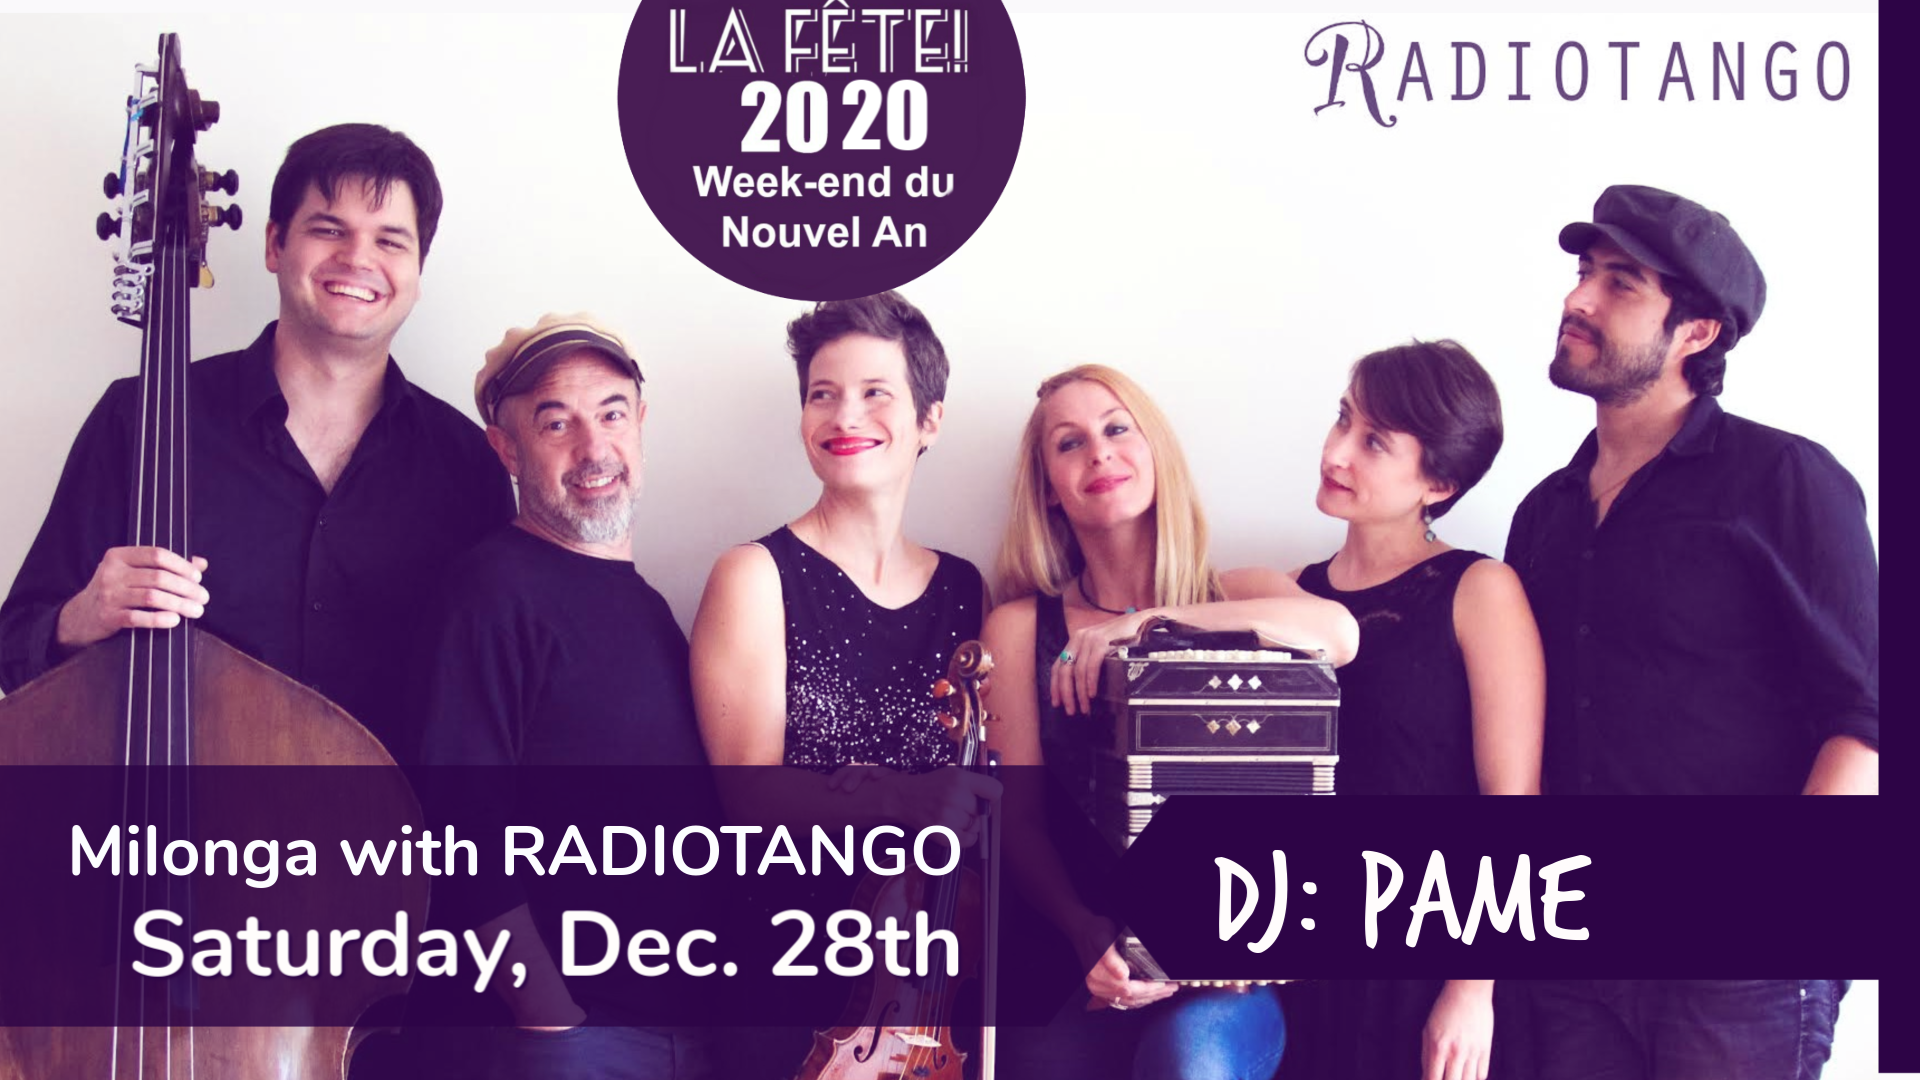 Saturday, December 28th - Tango Social Club's Saturday night milonga, all dressed up in style ! Our LaFETE opener will feature the live musique of Montreal's own ''RadioTango'' orchestra9:30 pm - 3:30 am, 25$ in advance28$ at the doorDj: Pame Bravo (Montreal)